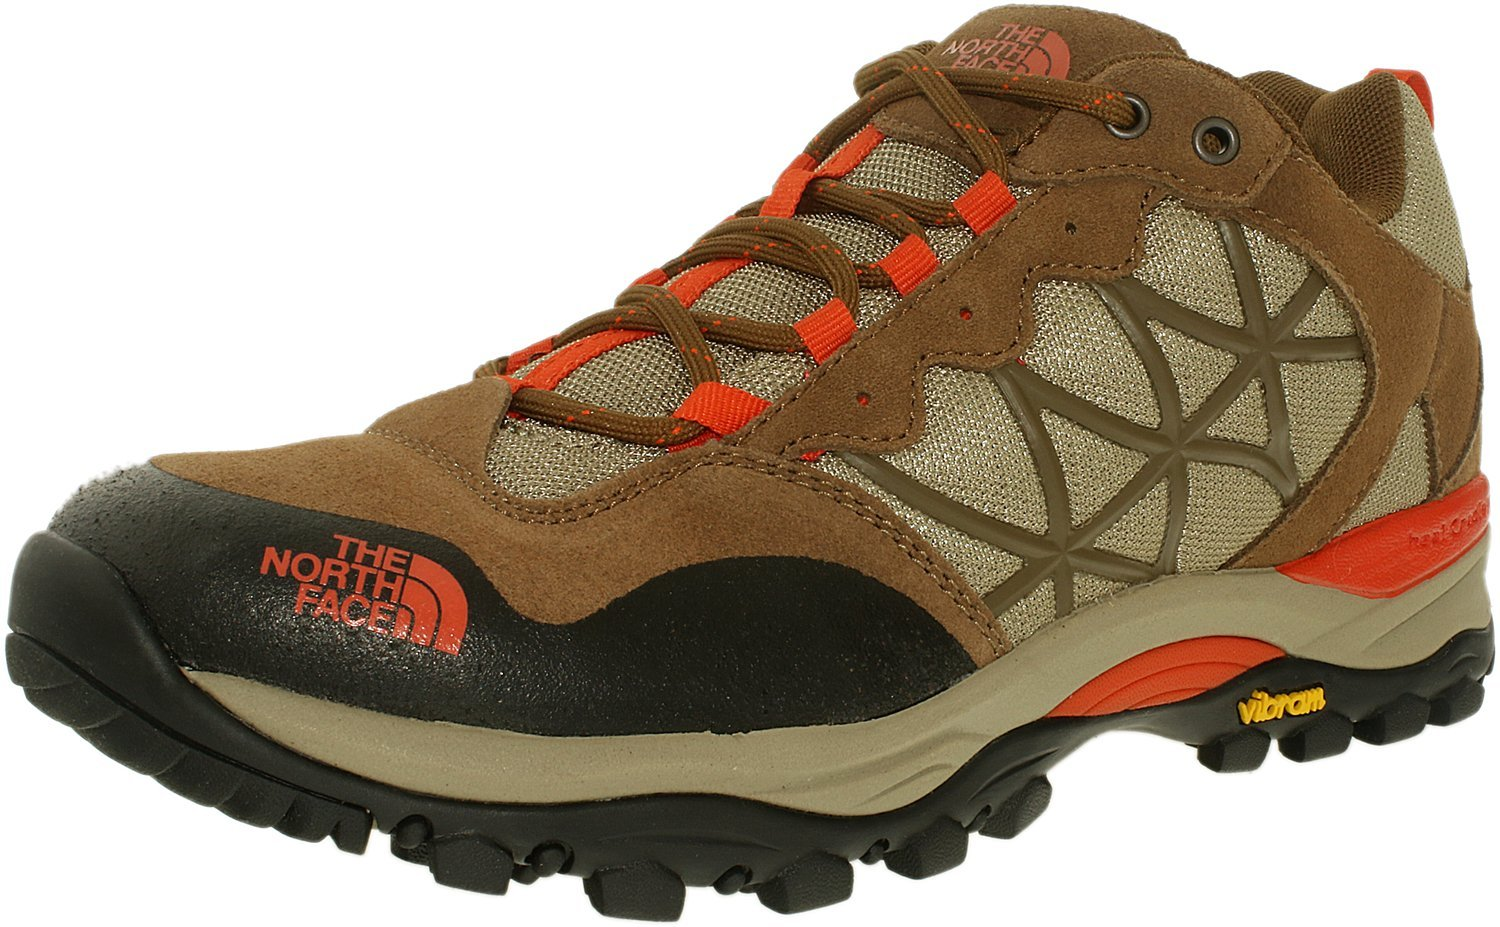 The North Face Women's Storm Sepia Brown/Spicy Orange Low Top Fabric Hiking Shoe - 7.5M